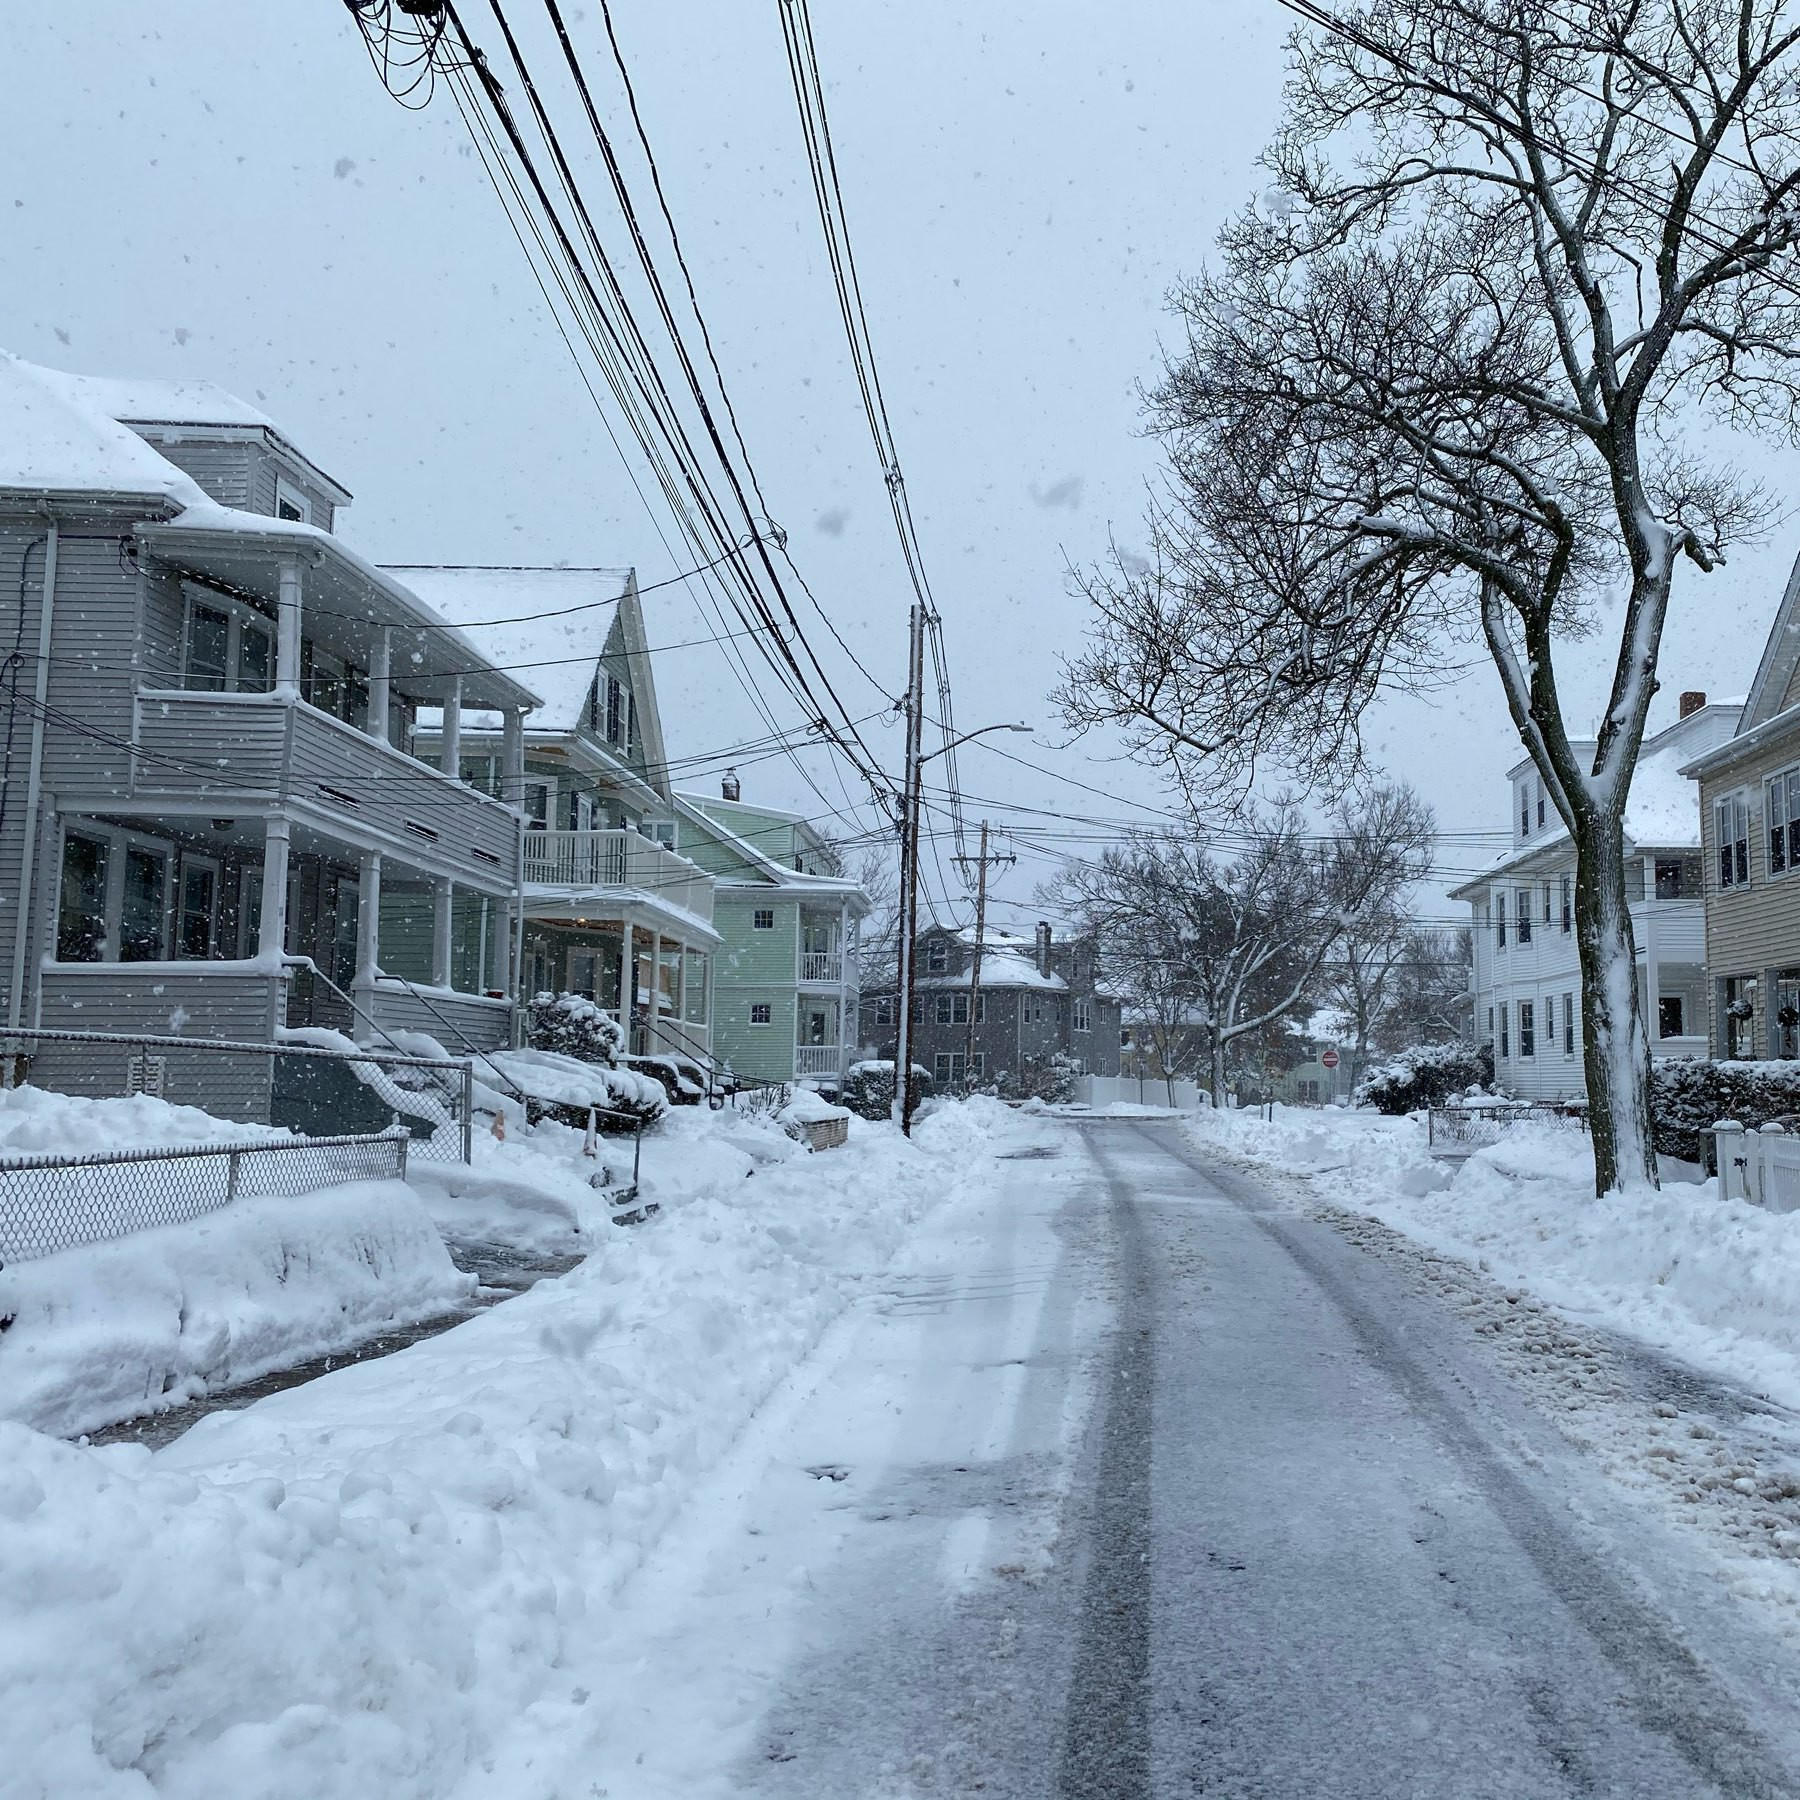 Snow covered New England street.